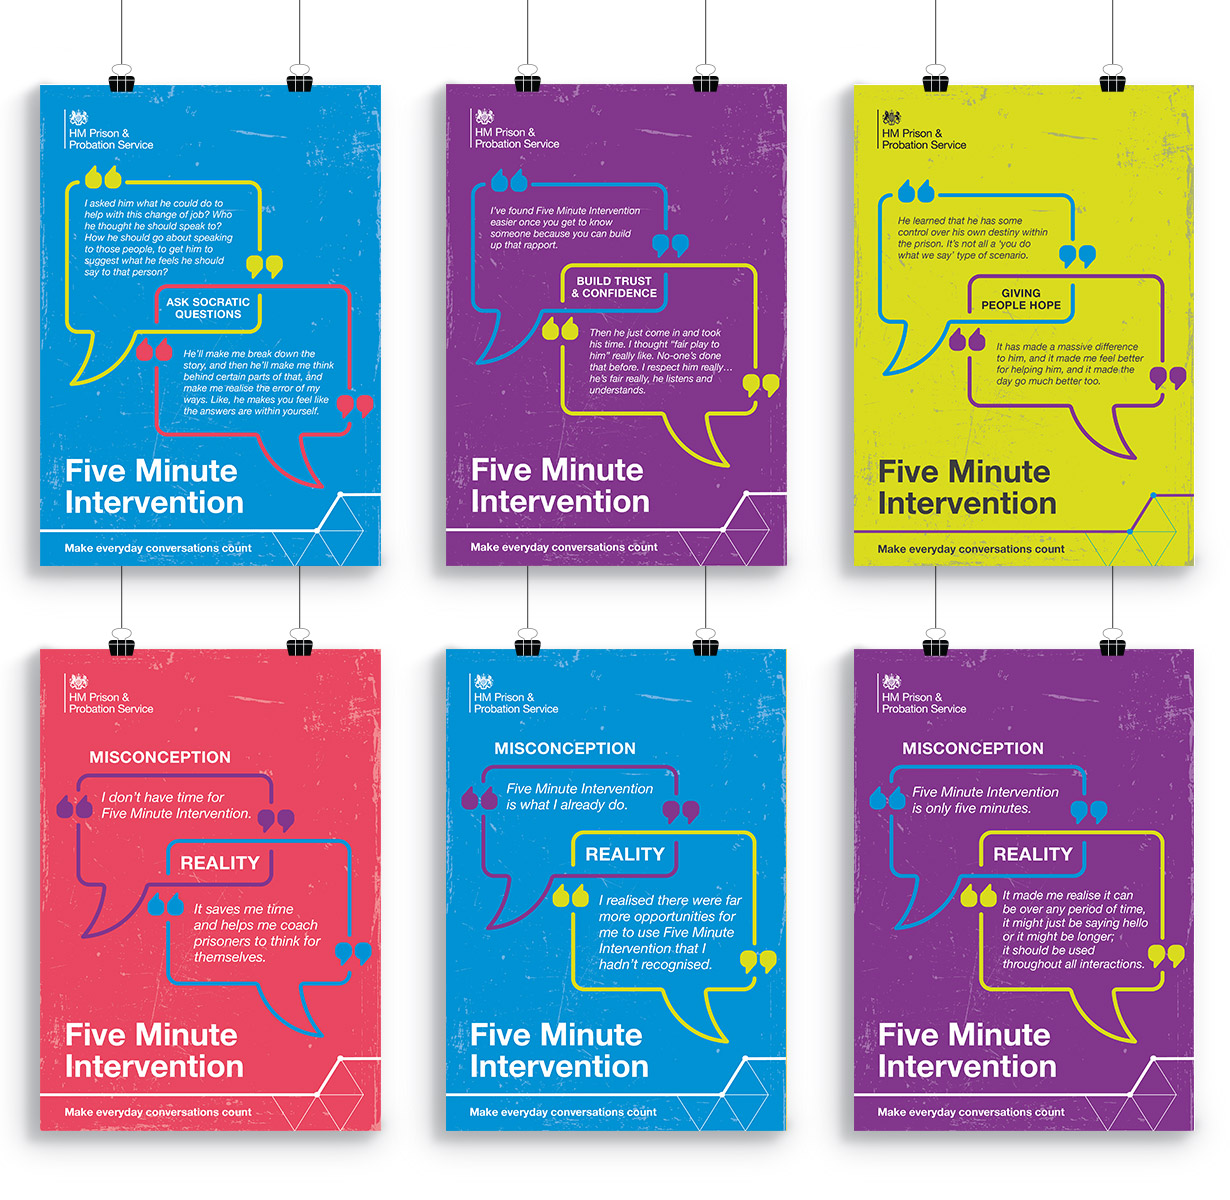 HMPPS - Five Minute Intervention posters